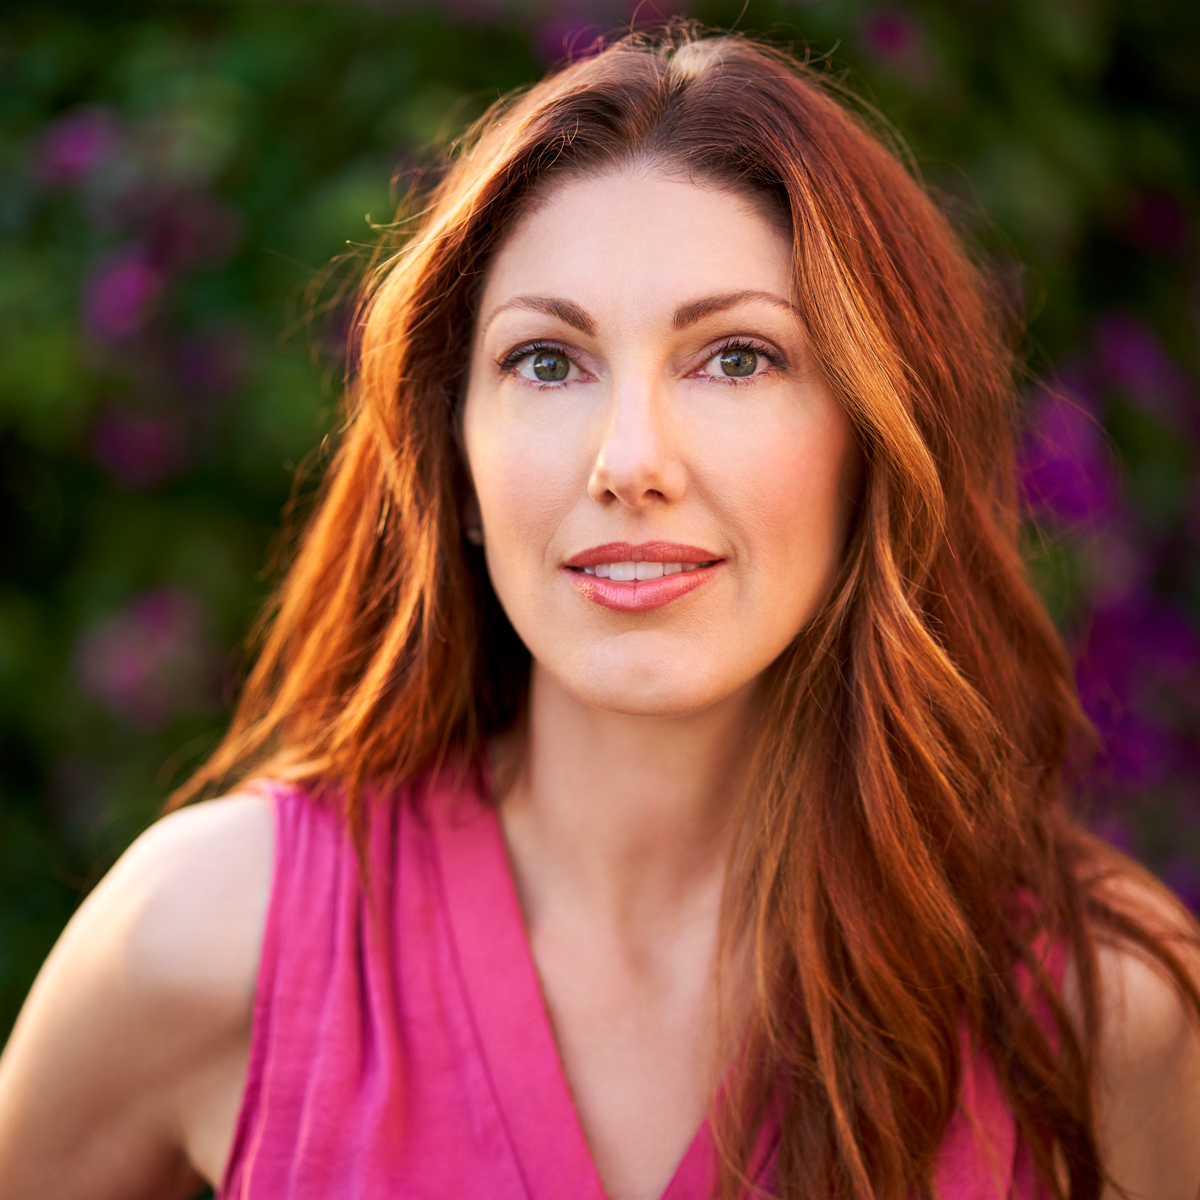 San Diego Mental Health Expert for TV News - Psychotherapist Abby Burd